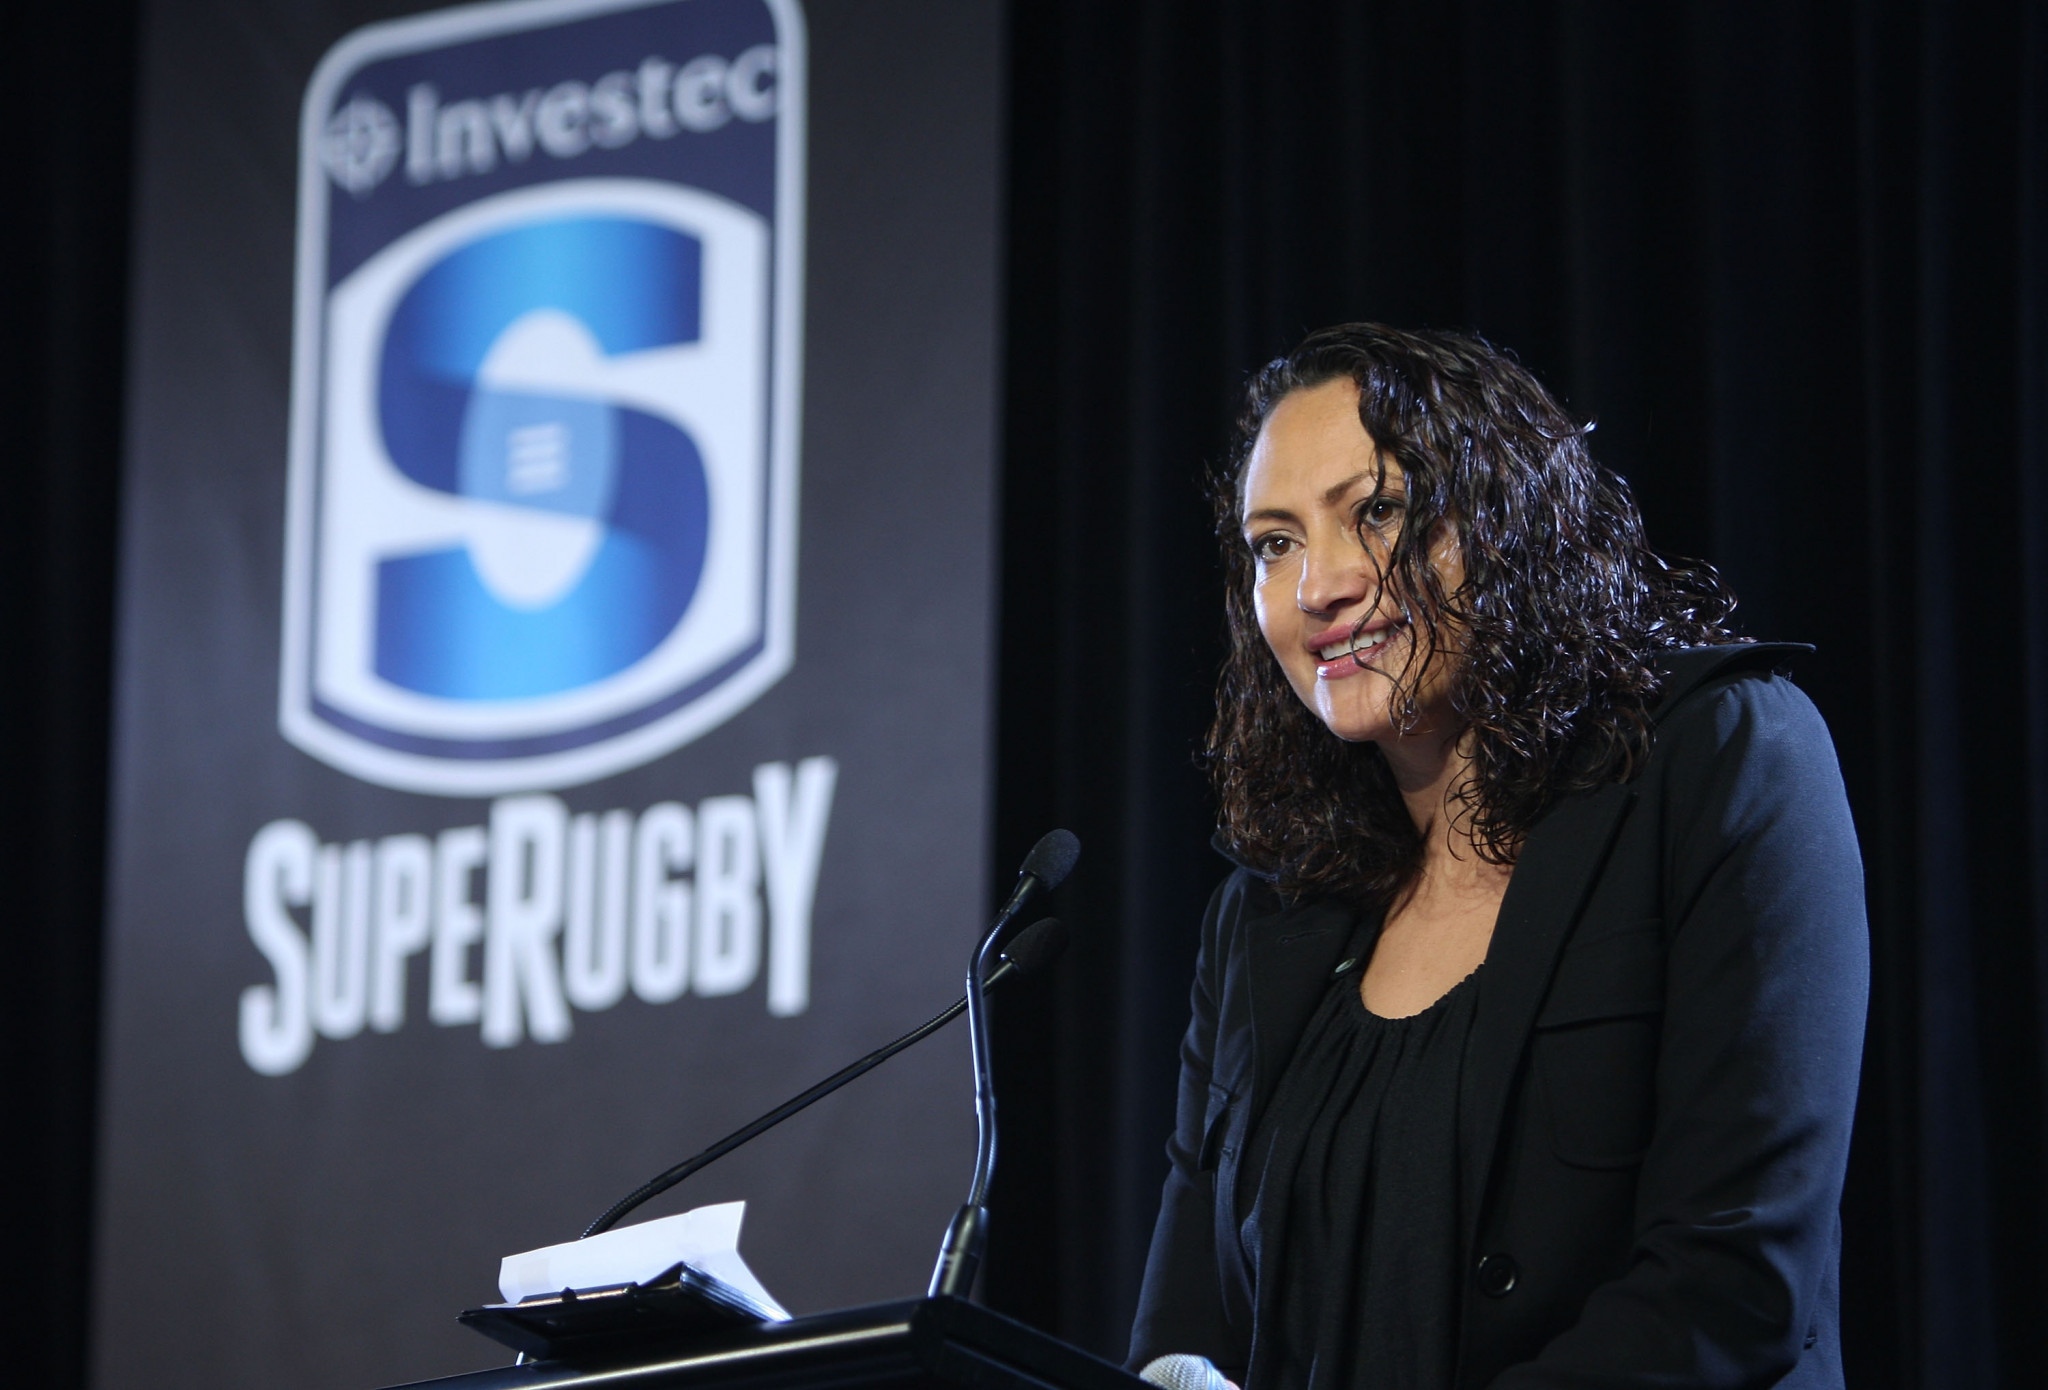 Melodie Robinson will help choose World Rugby's men's 15s player of the year ©Getty Images